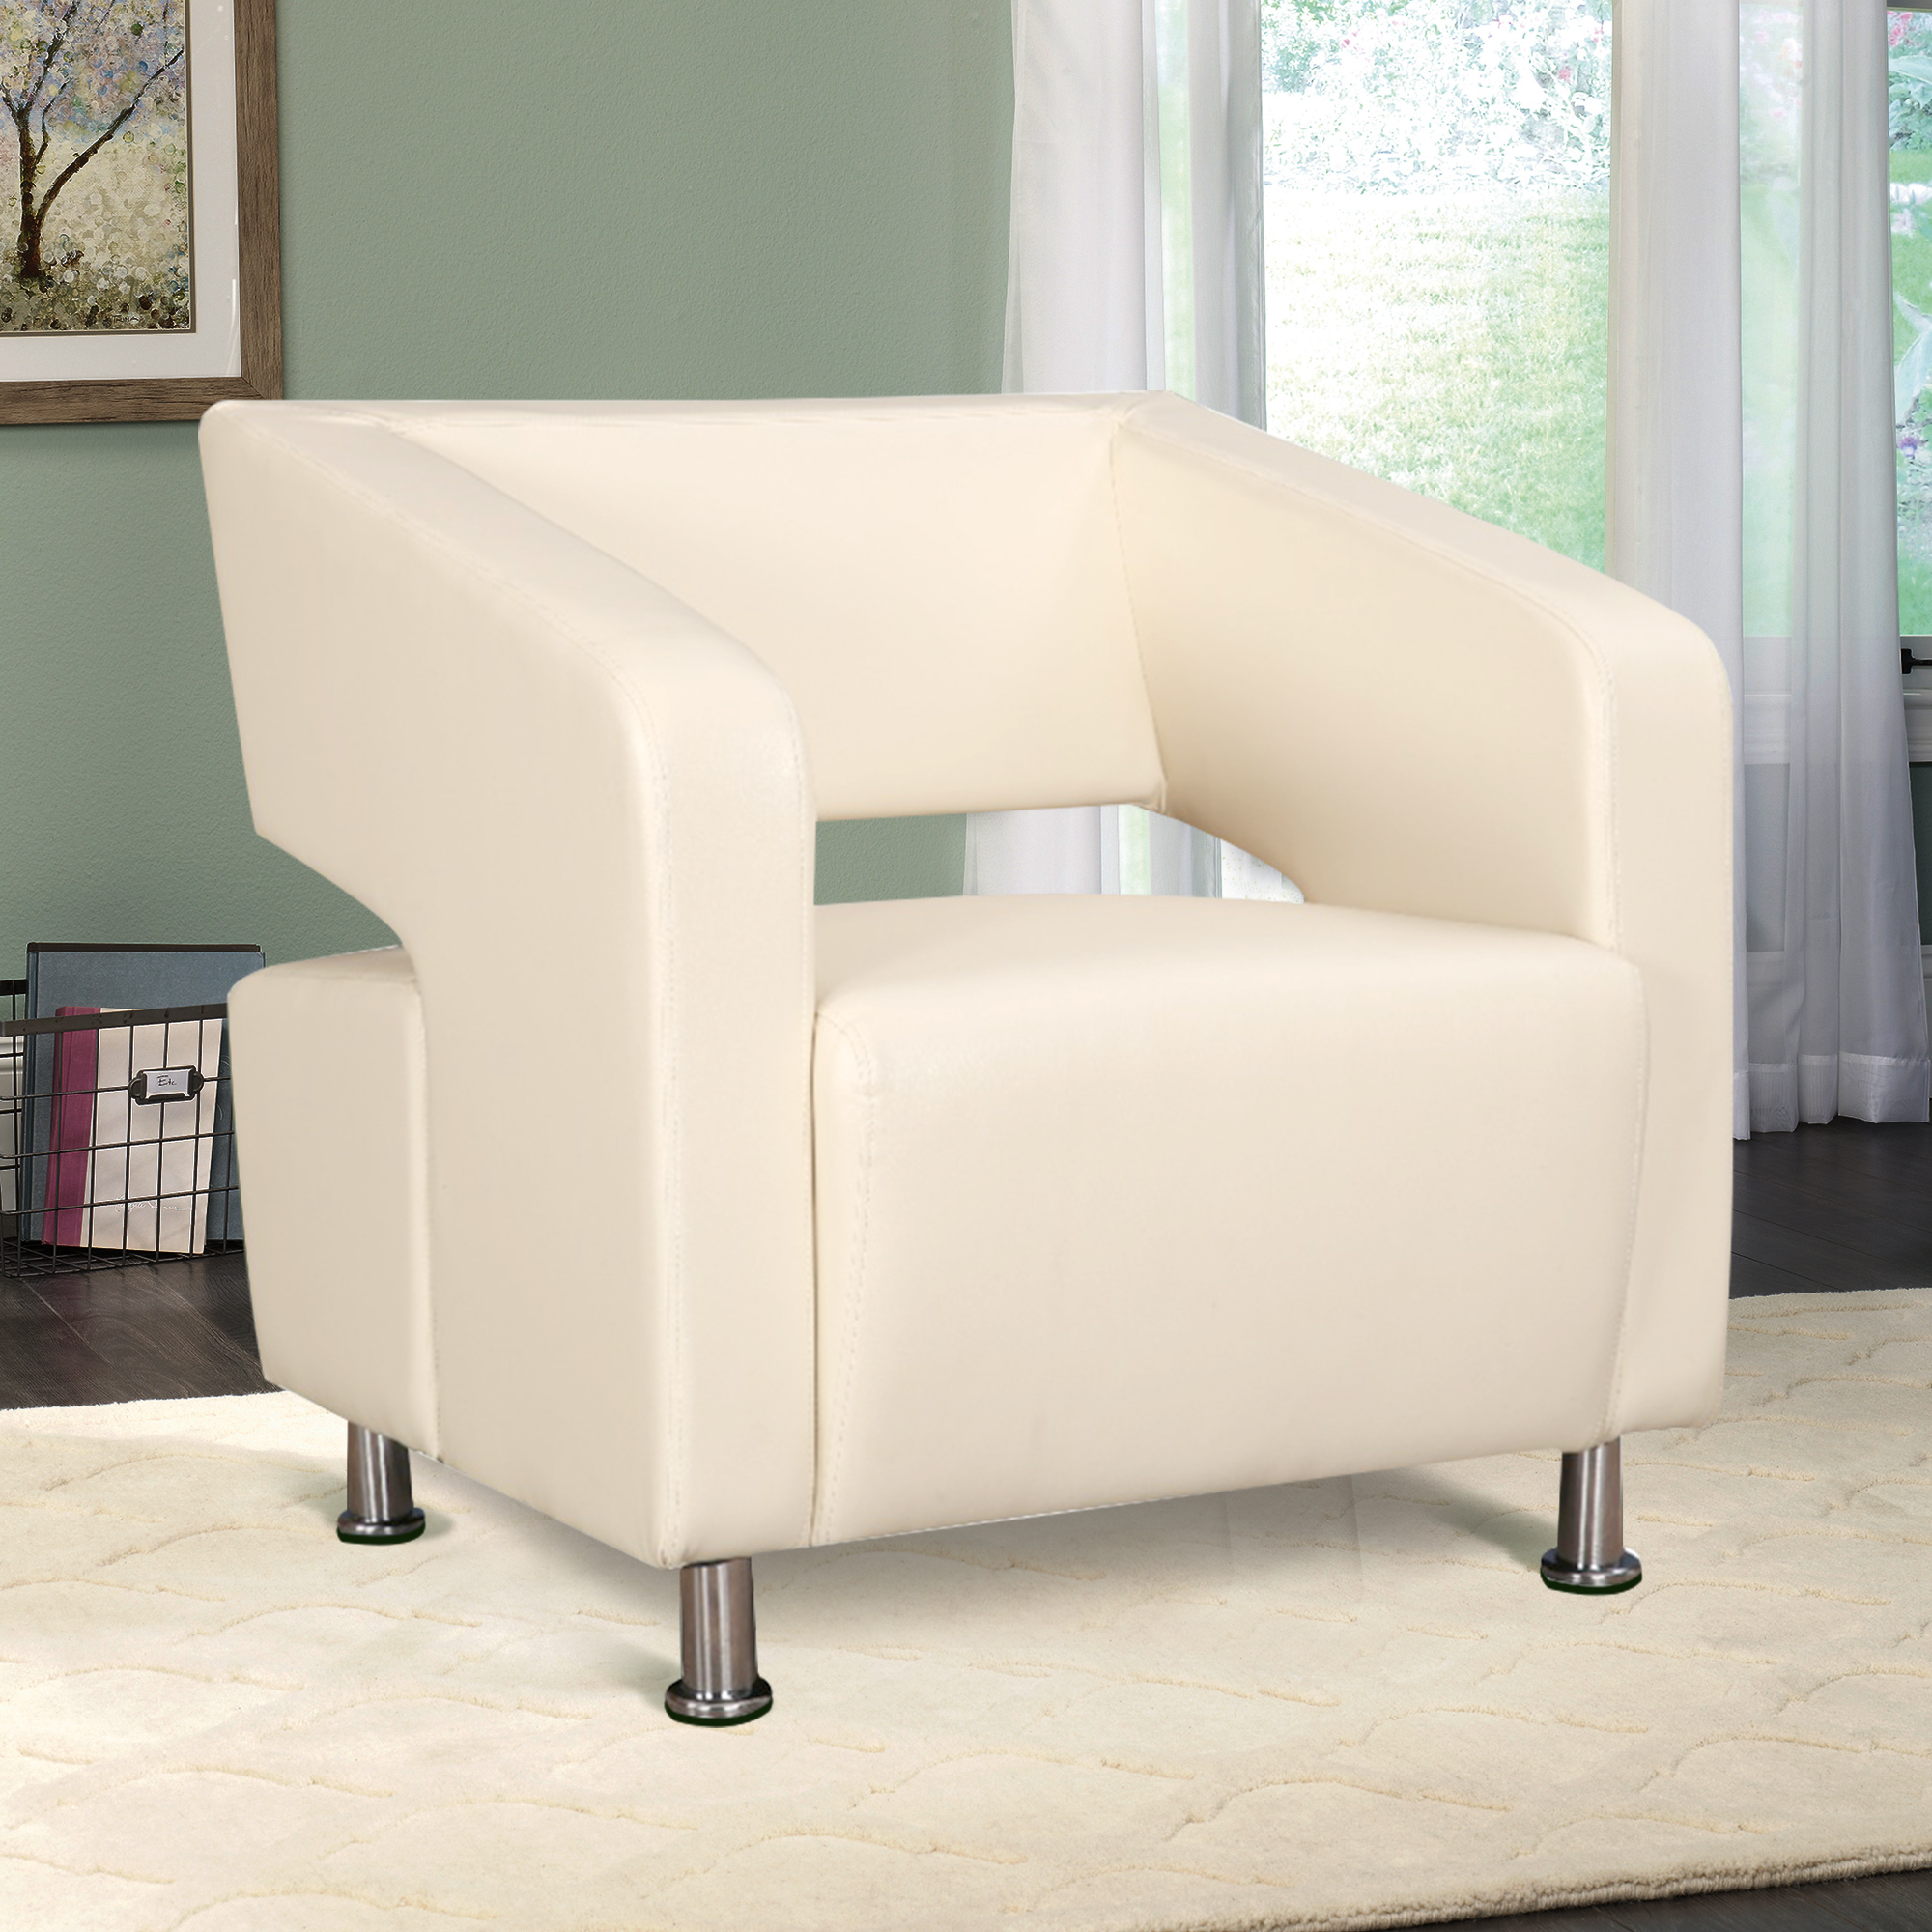 Arrow PVC Visitor Bench in Beige Colour by HomeTown